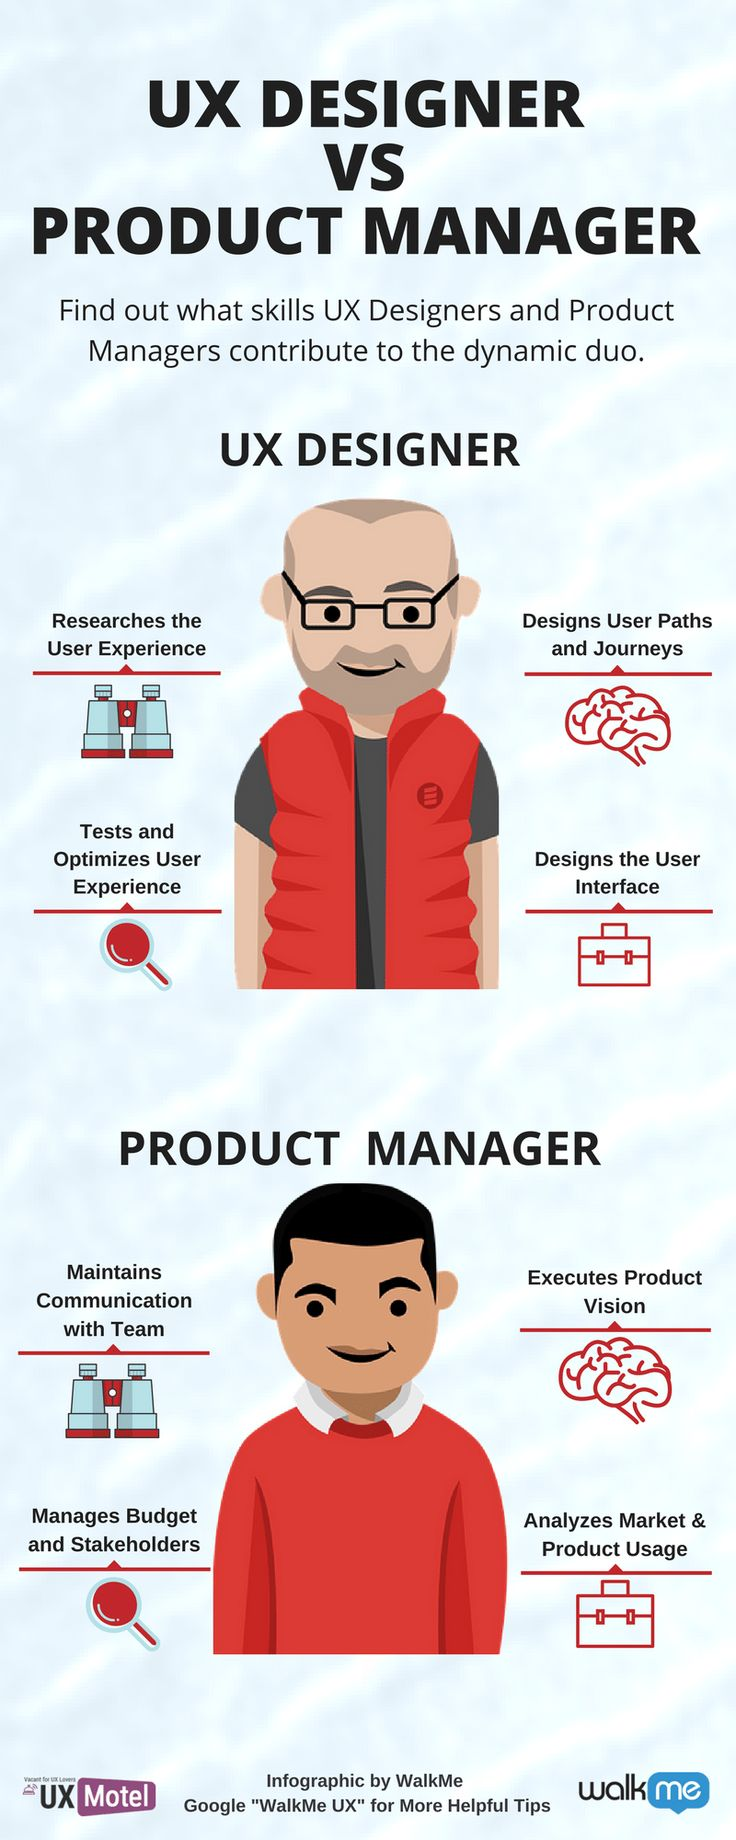 UX DESIGNER VS PRODUCT MANAGER Find out what skills UX Designers and Product Managers contribute to the dynamic duo. UX DESIGNER Researches the User Experience Designs User Paths and Journeys Tests...